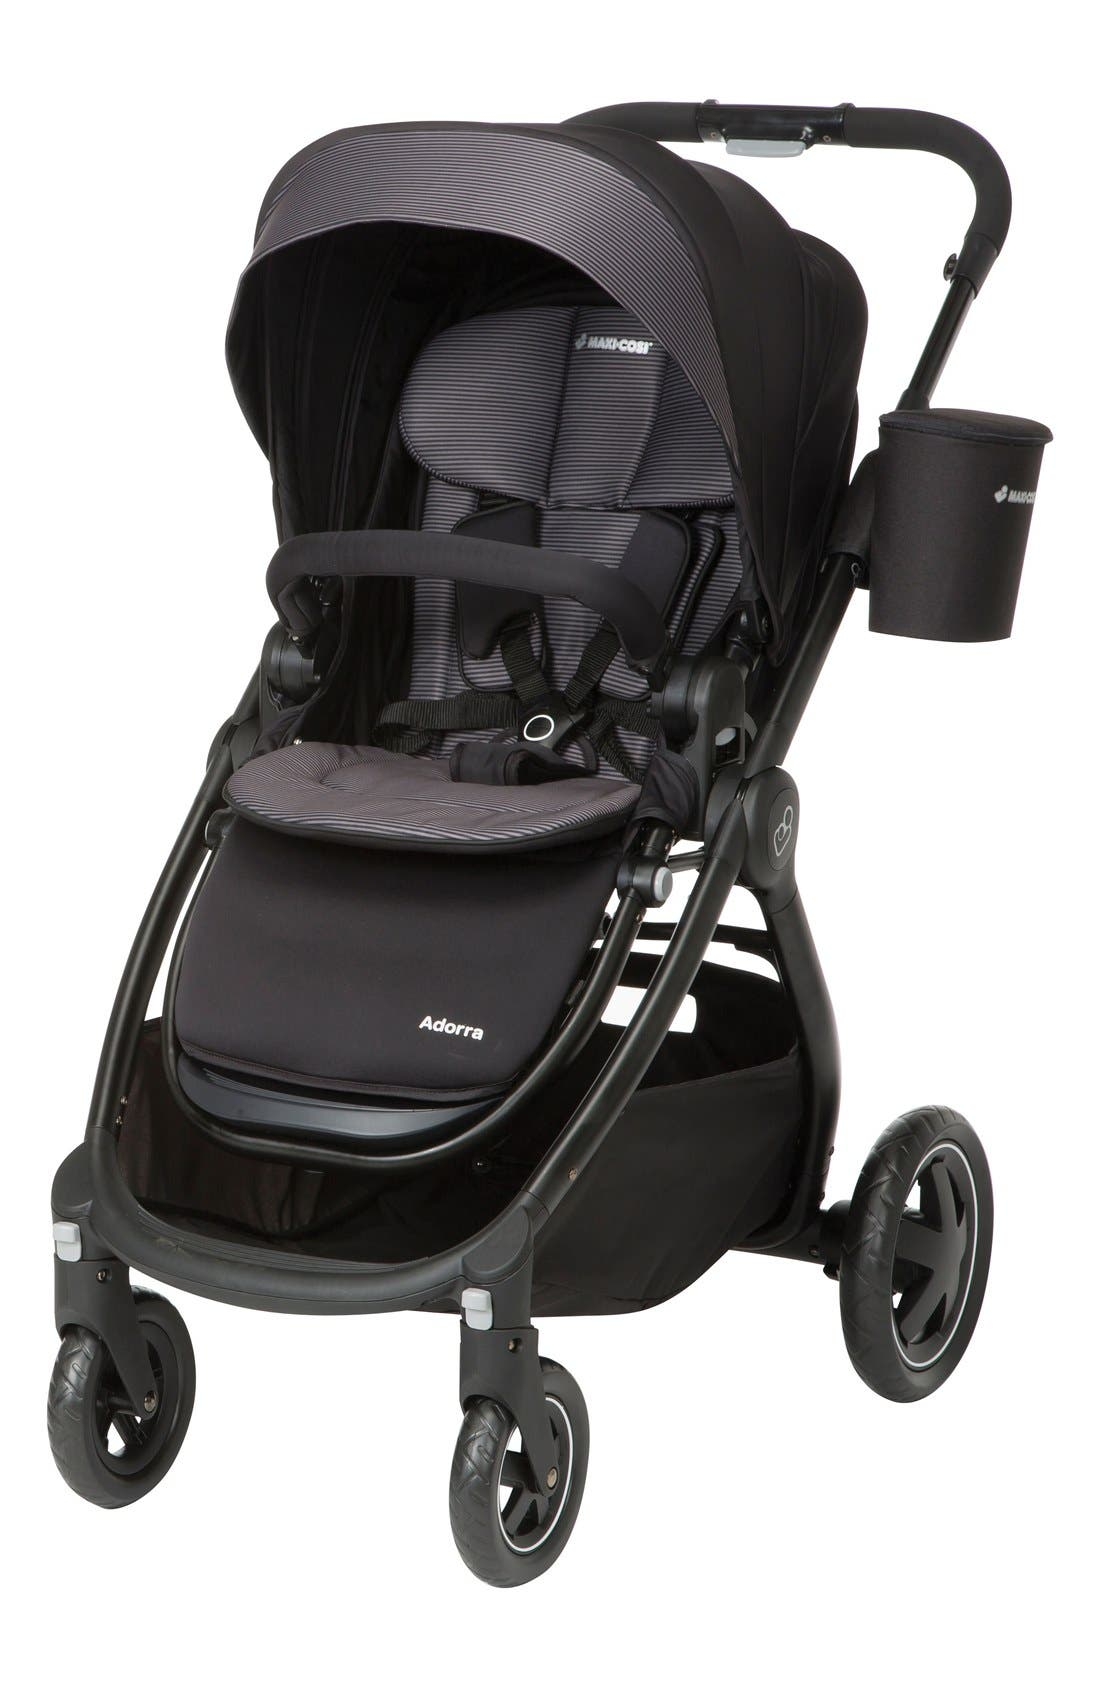 Adorra Stroller,                             Main thumbnail 1, color,                             002